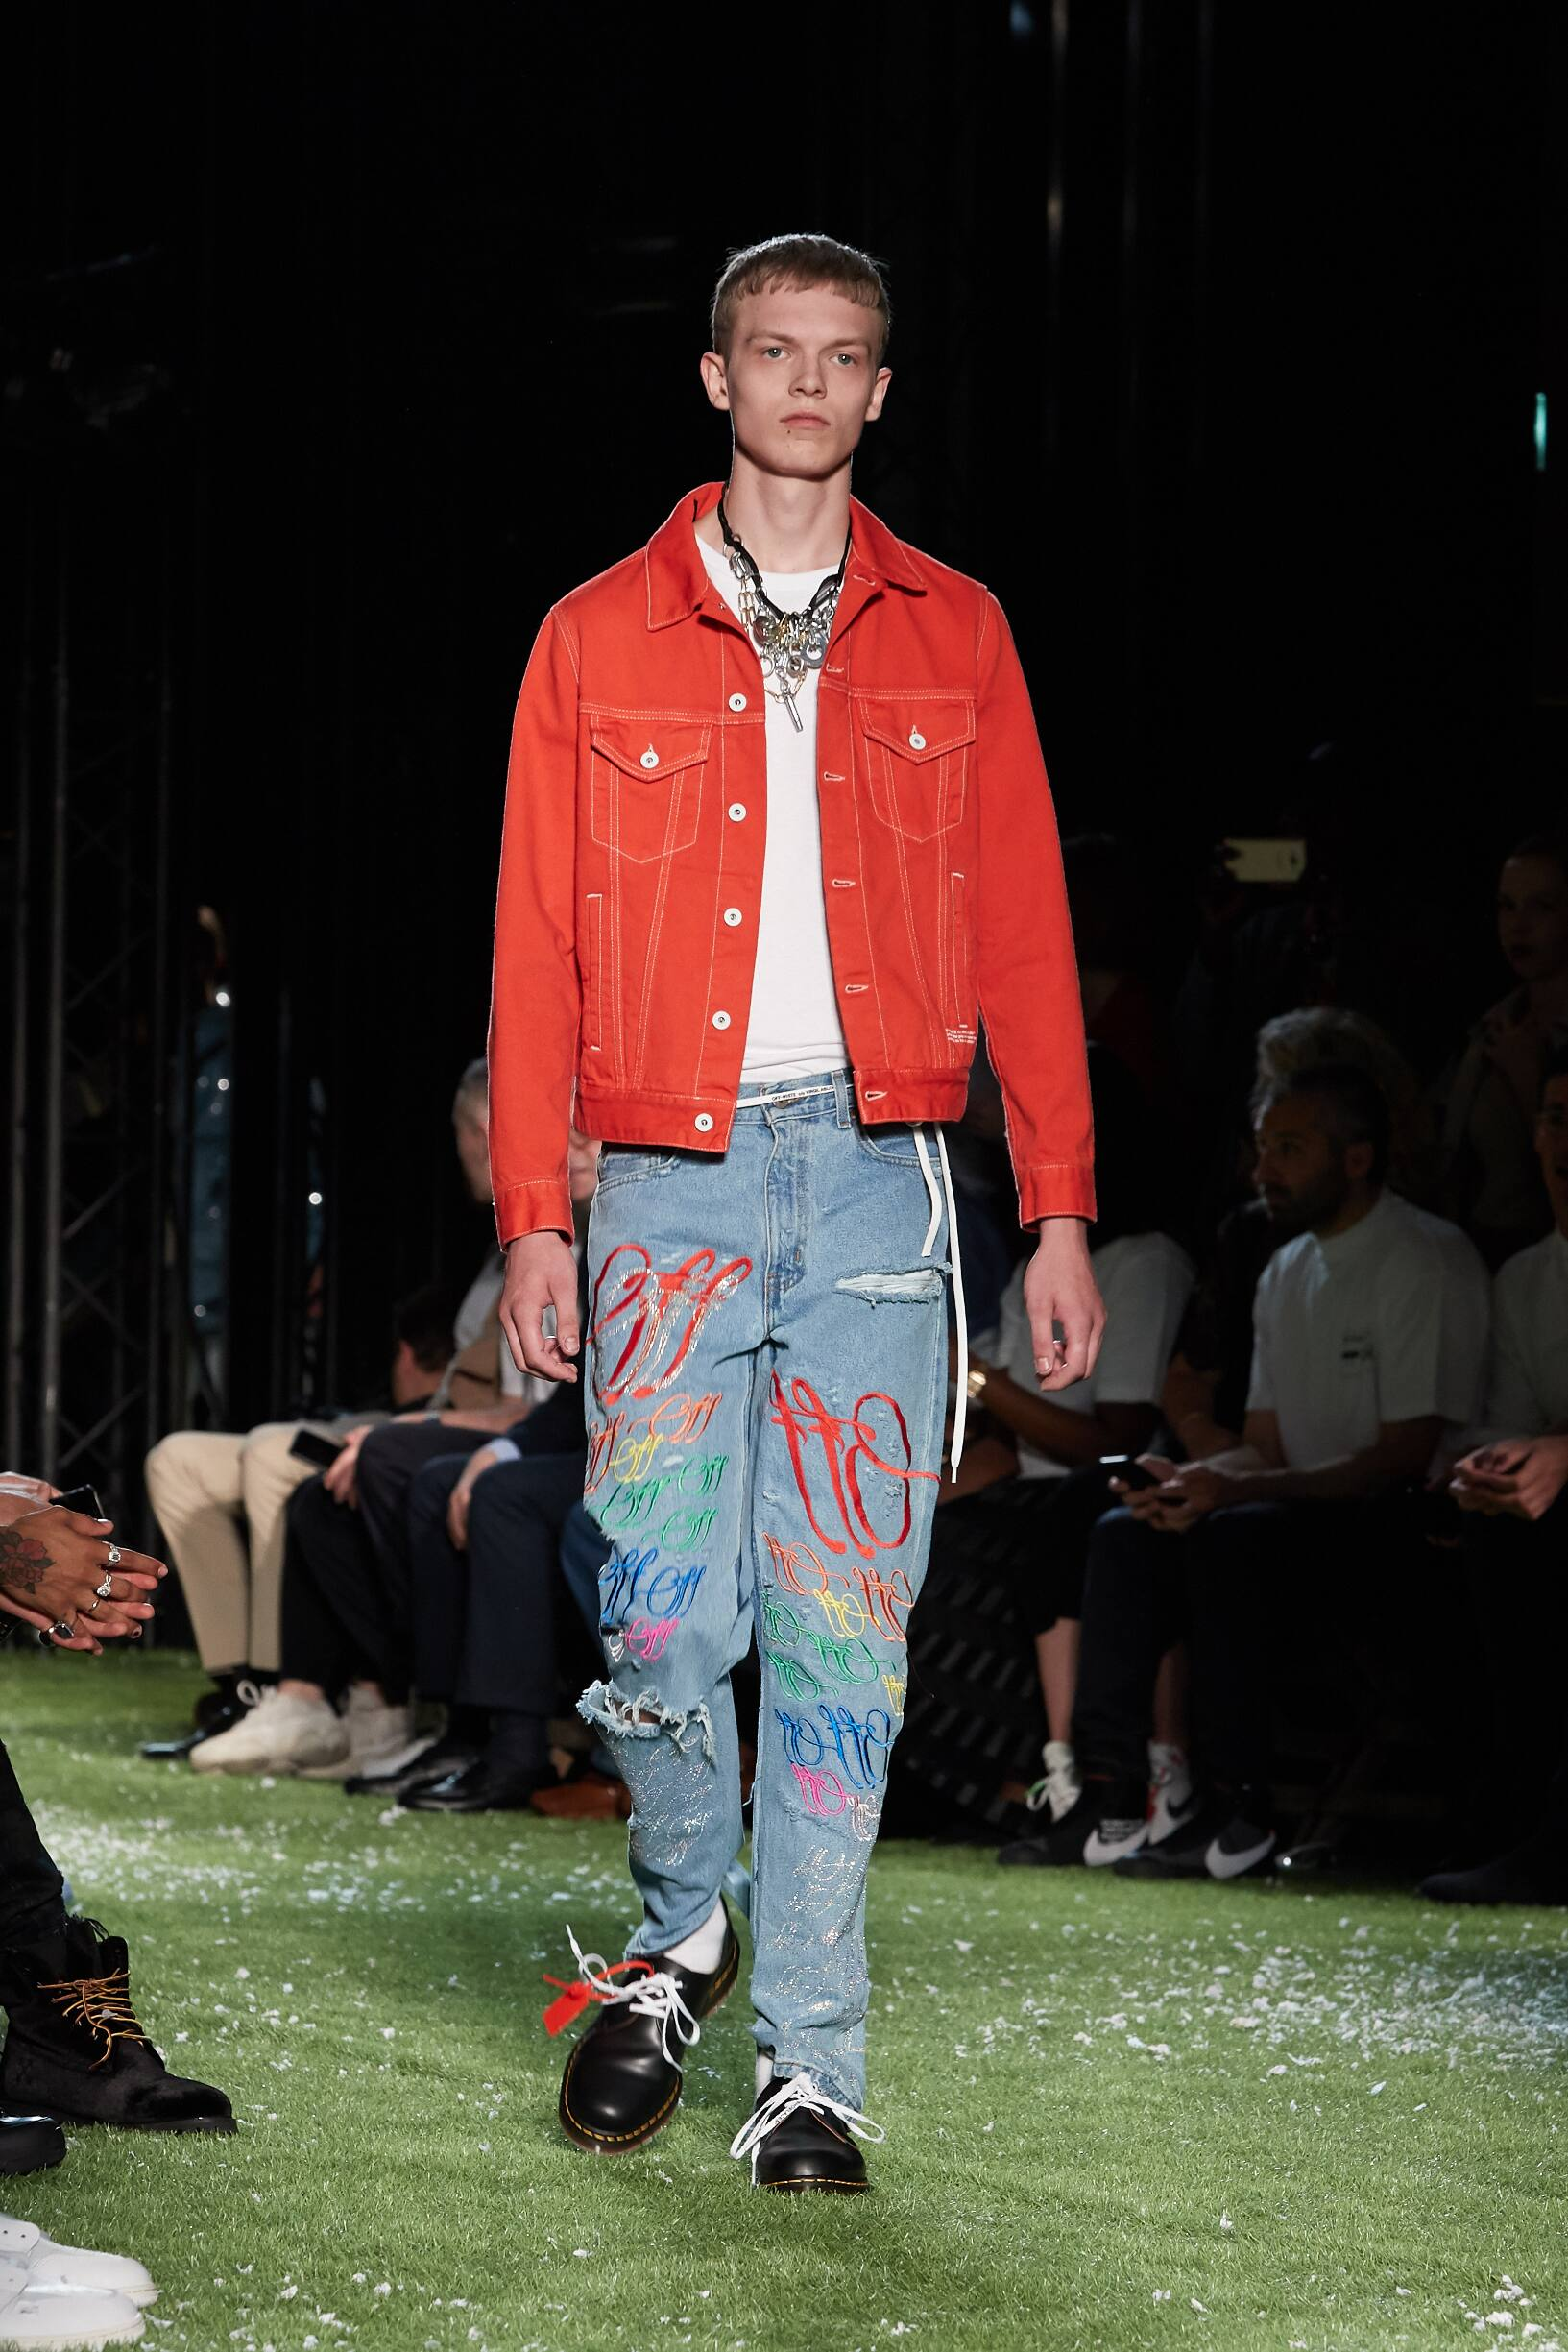 Catwalk Off-White Man Fashion Show Summer 2019